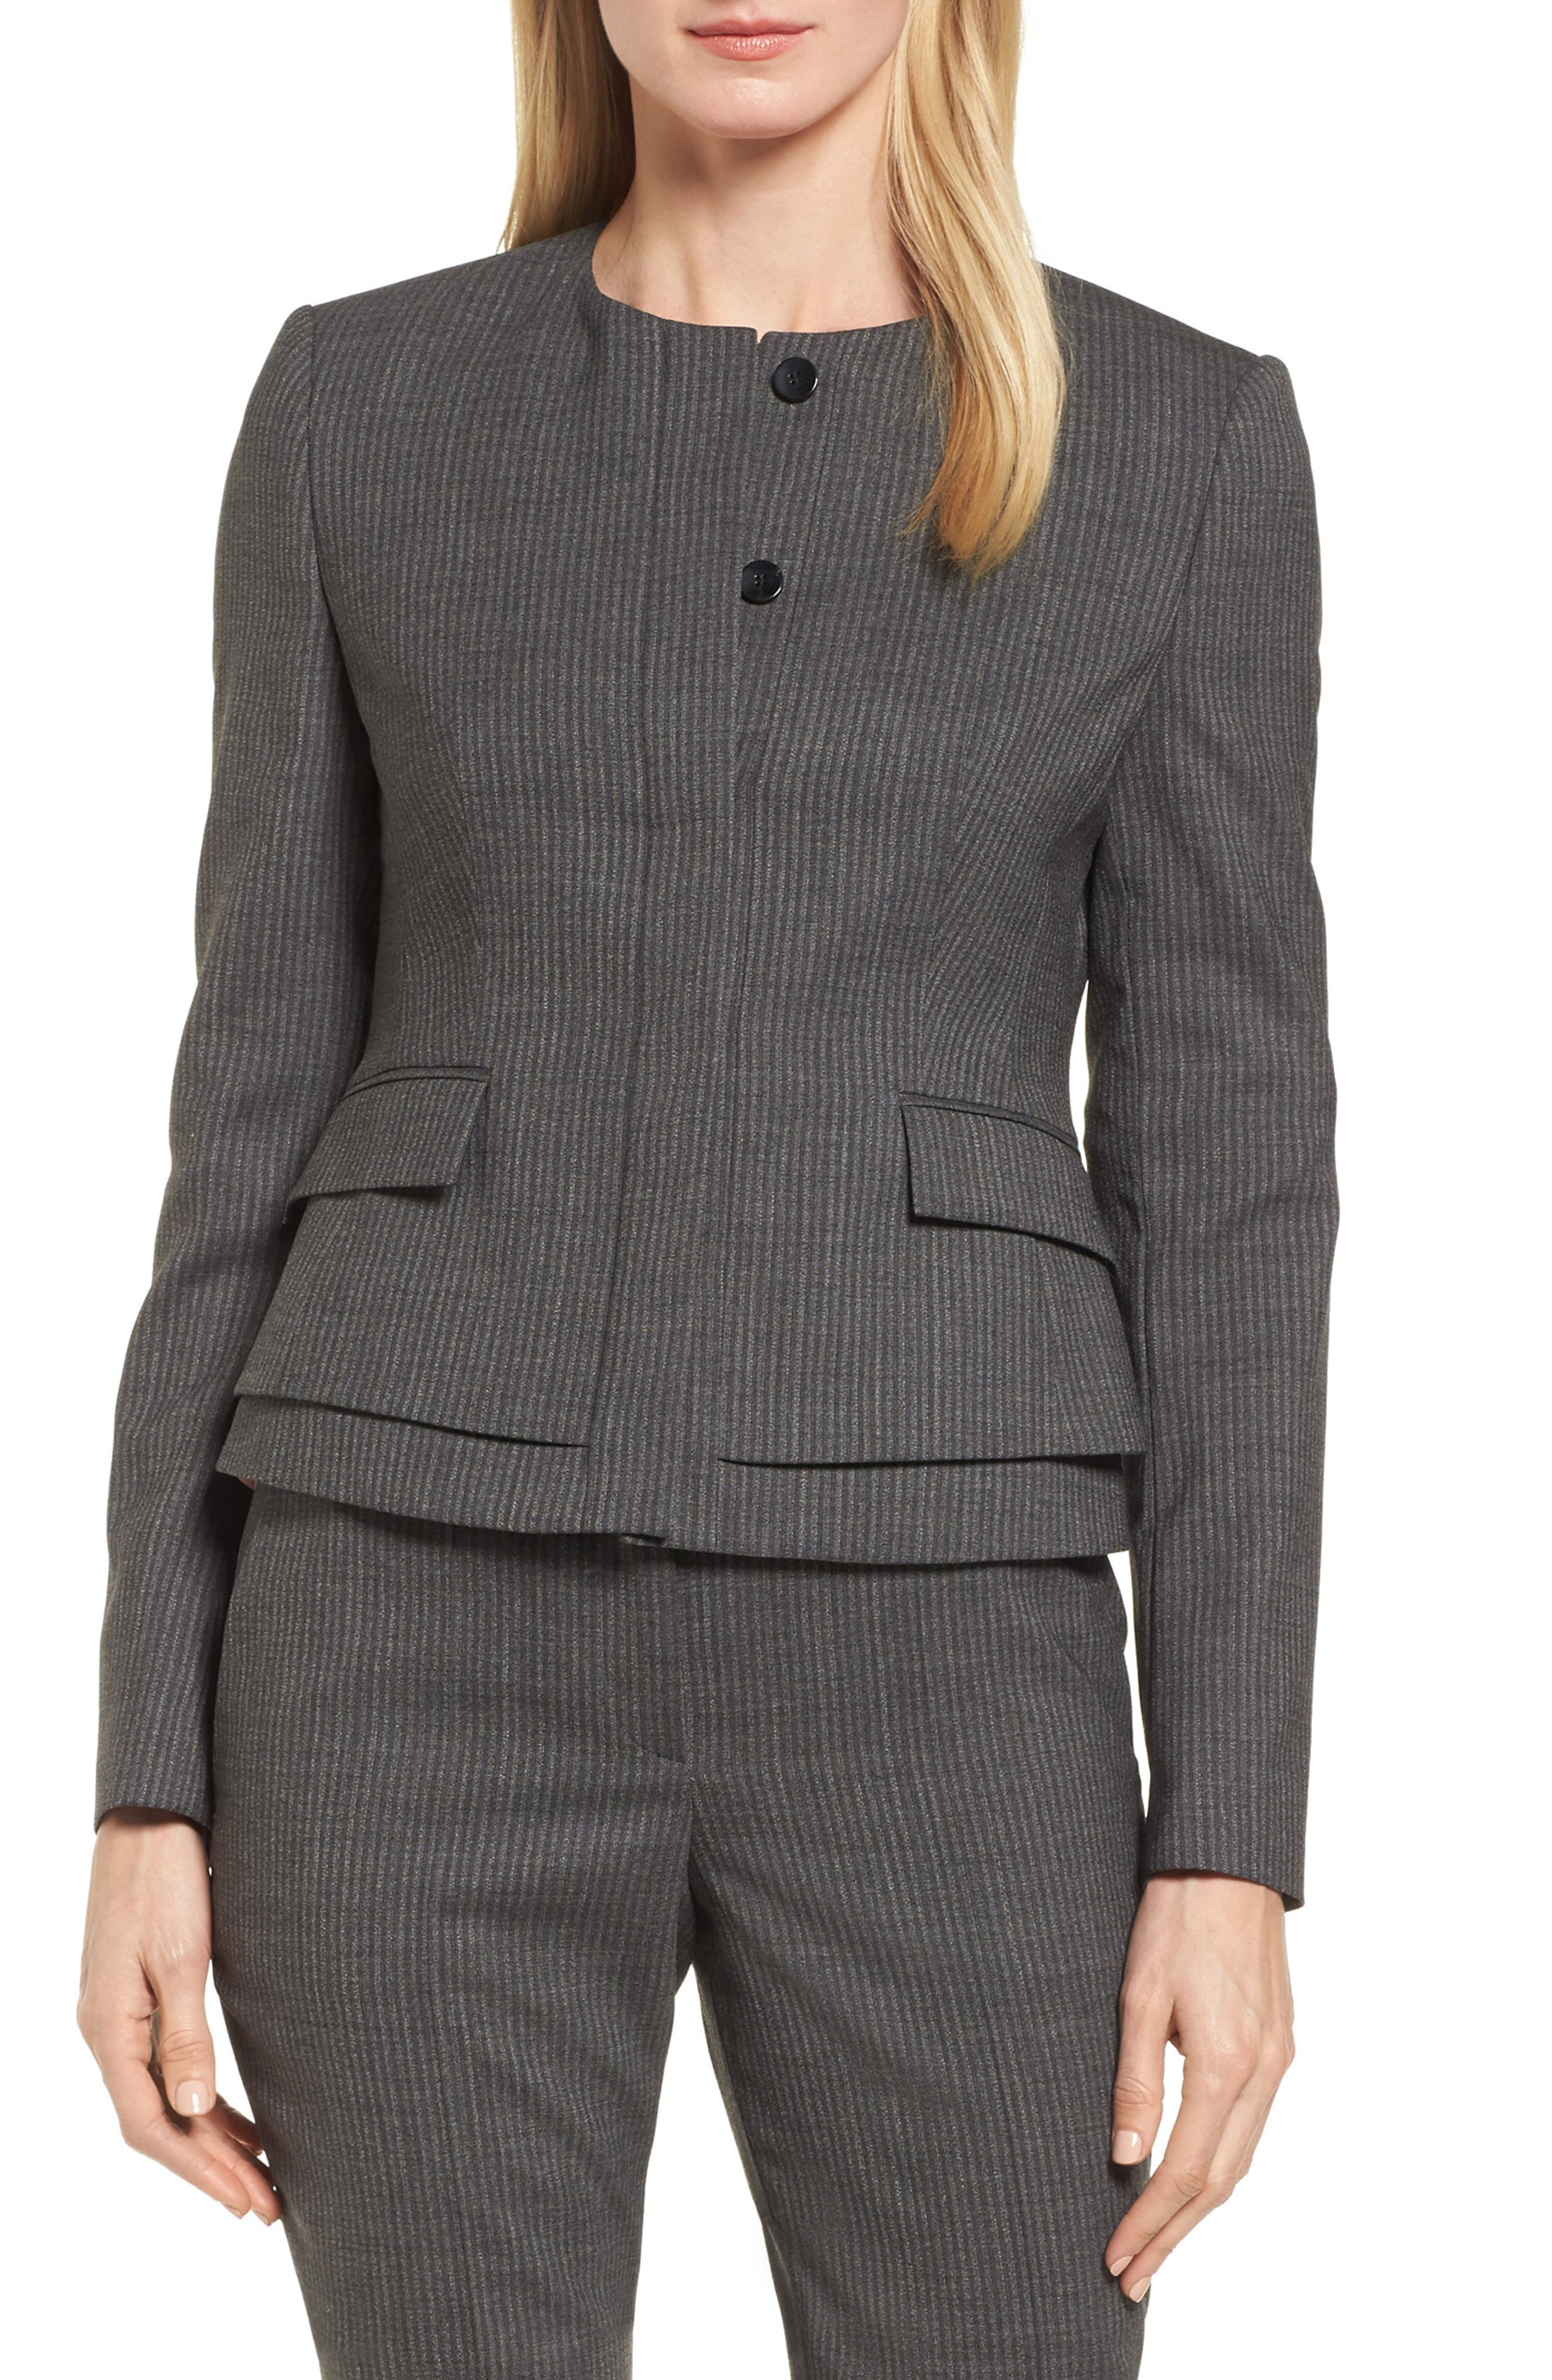 Jasyma Stripe Wool Suit Jacket,                             Main thumbnail 1, color,                             070